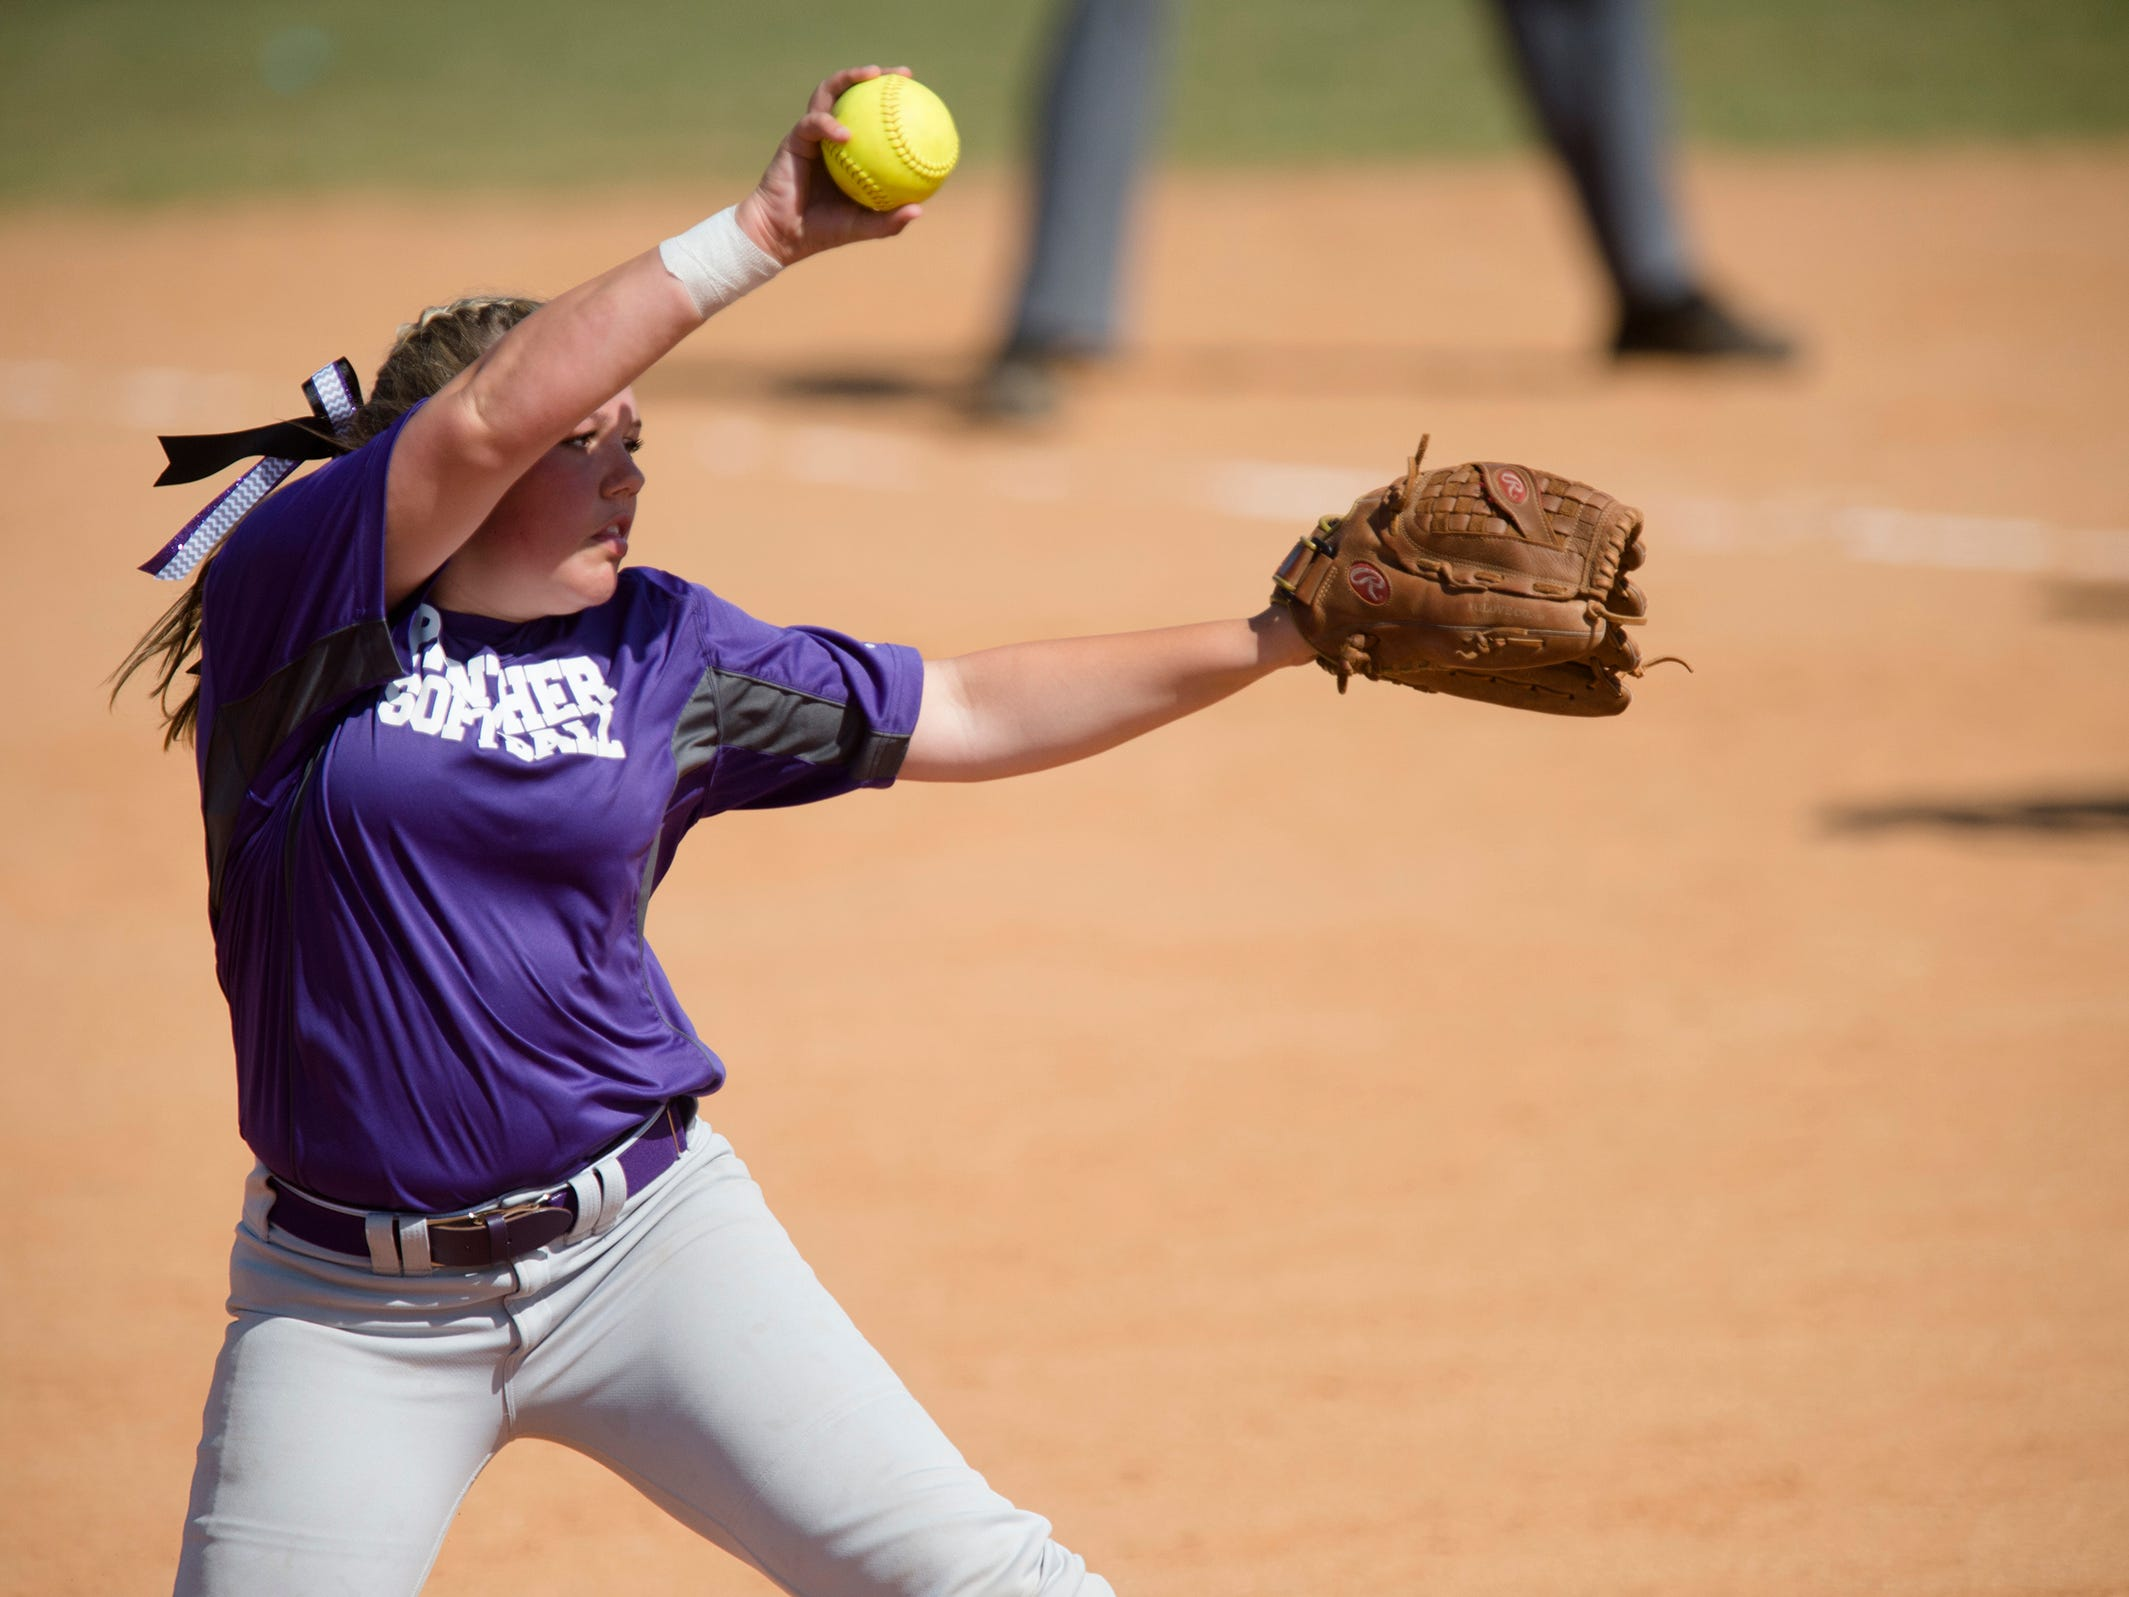 Prattville ChristianÕs Hayden Law (10) throws a pitch during the AHSAA Class 3A State Softball Tournament game against Winfield on Thursday, May 14, 2015, at Lagoon Park in Montgomery, Ala.